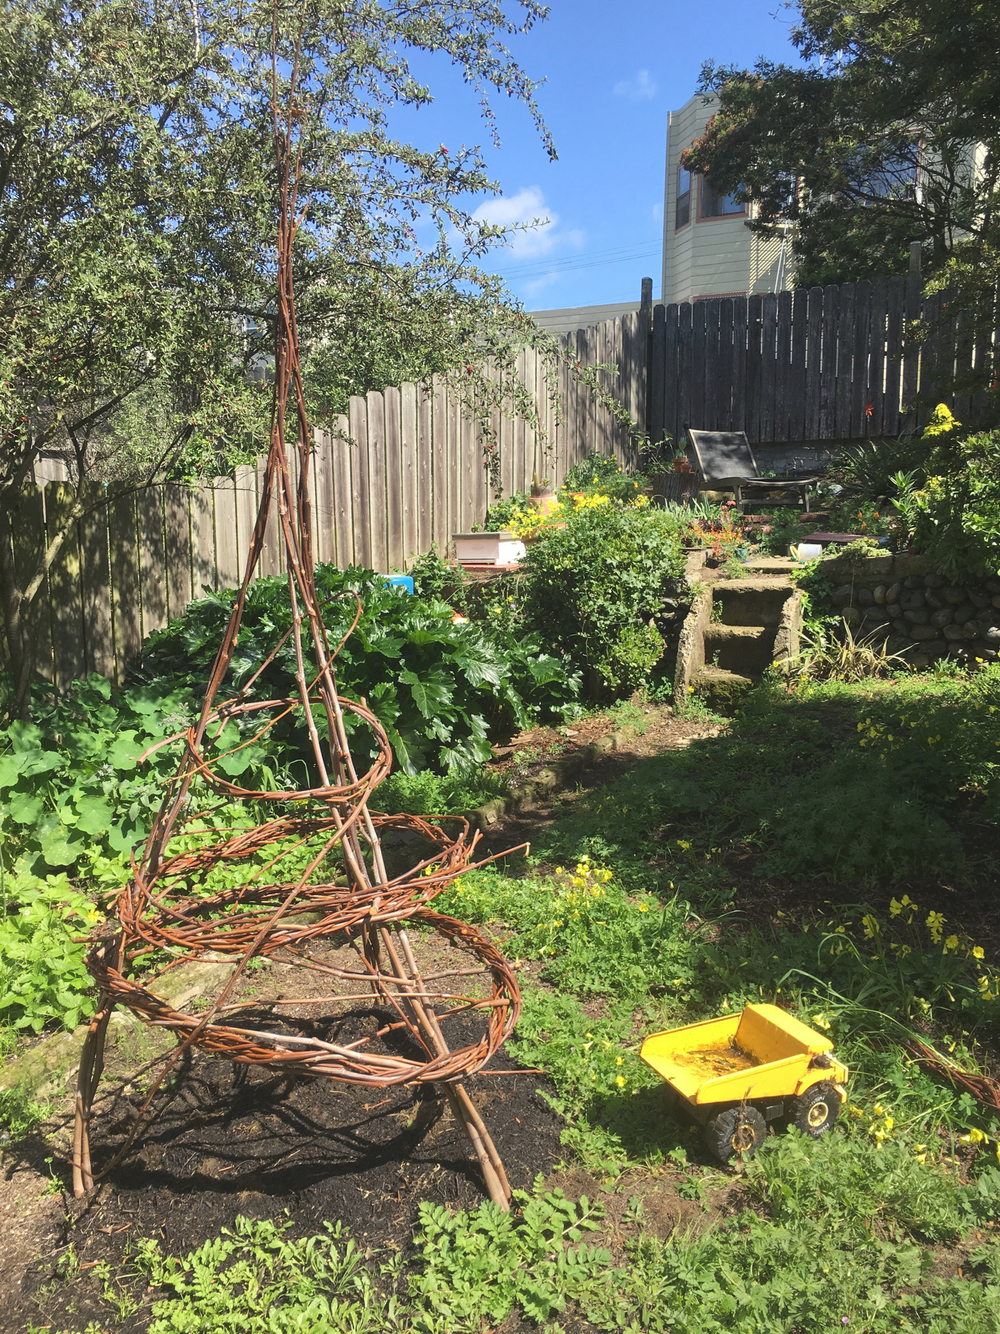 I employed a bit of freestyle weaving in the creation of this sycamore whip trellis for Scarlet Runner beans.